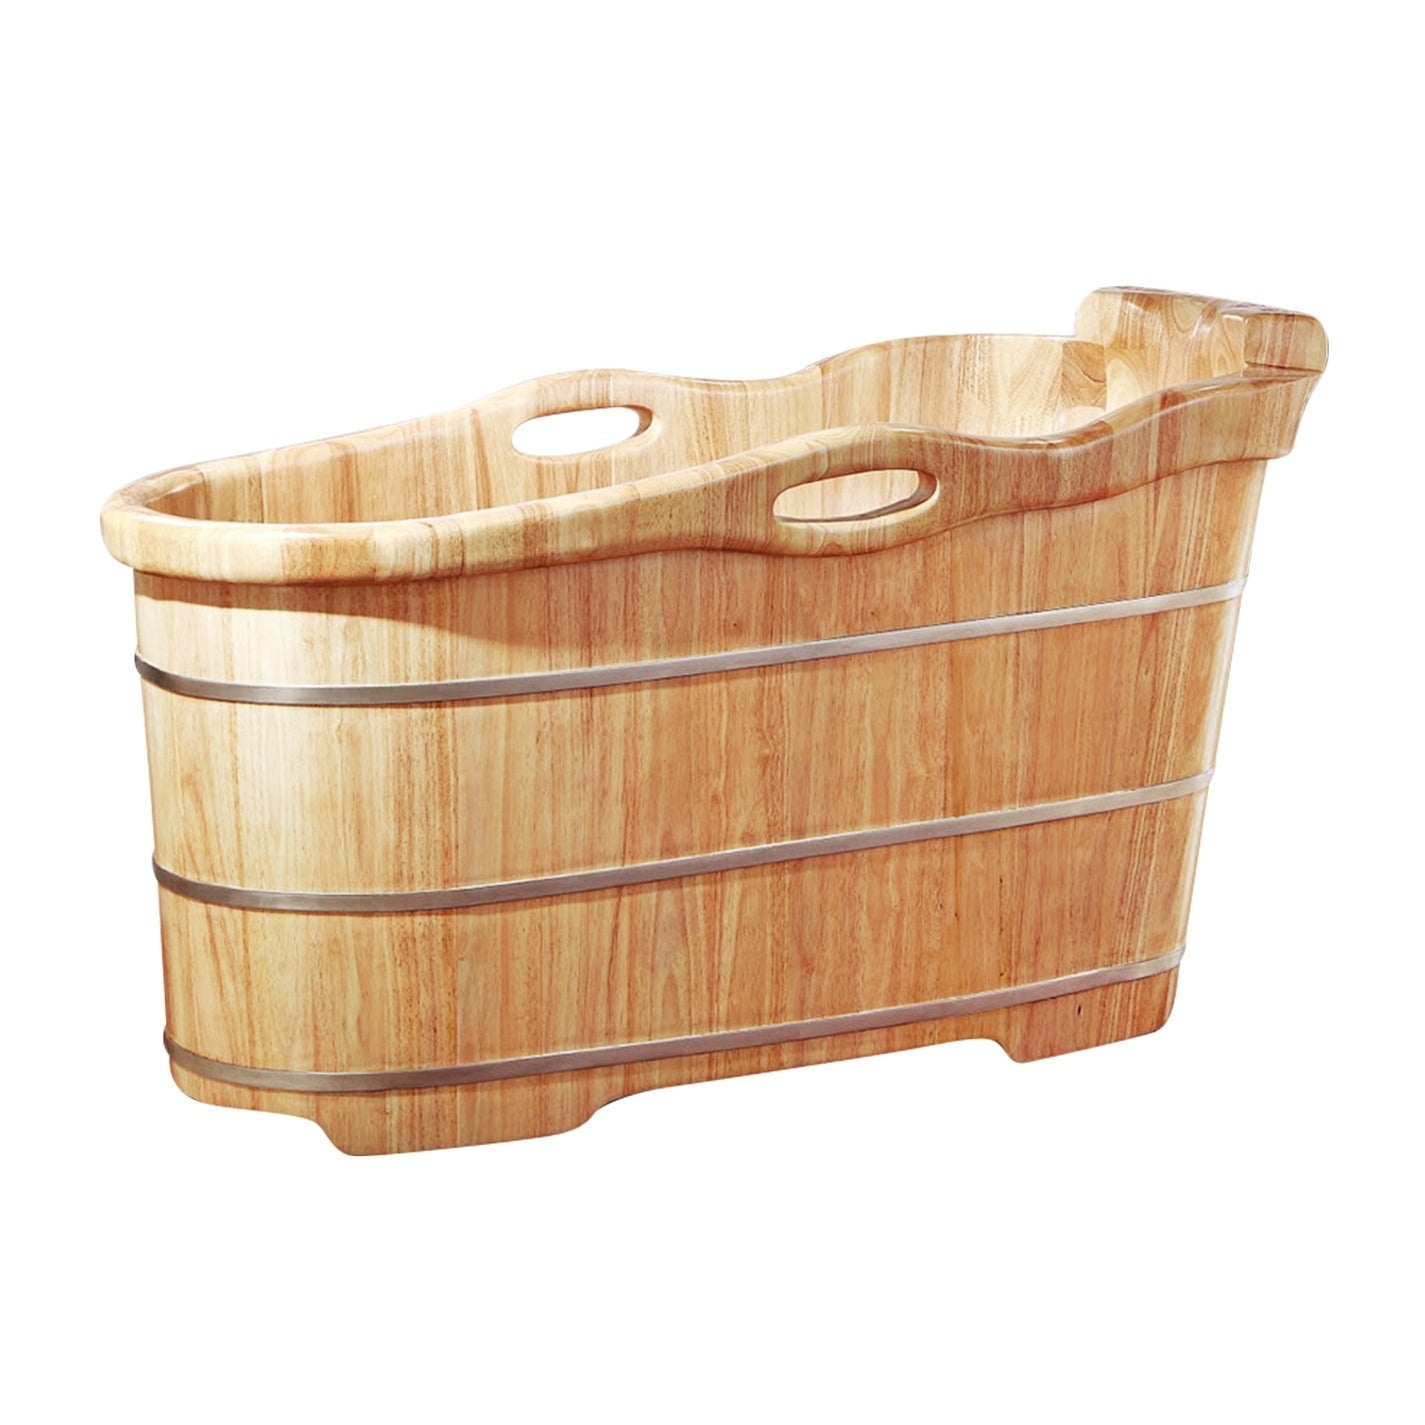 "Alfi brand AB1187 57"" Free Standing Rubber Wooden Soaking..."